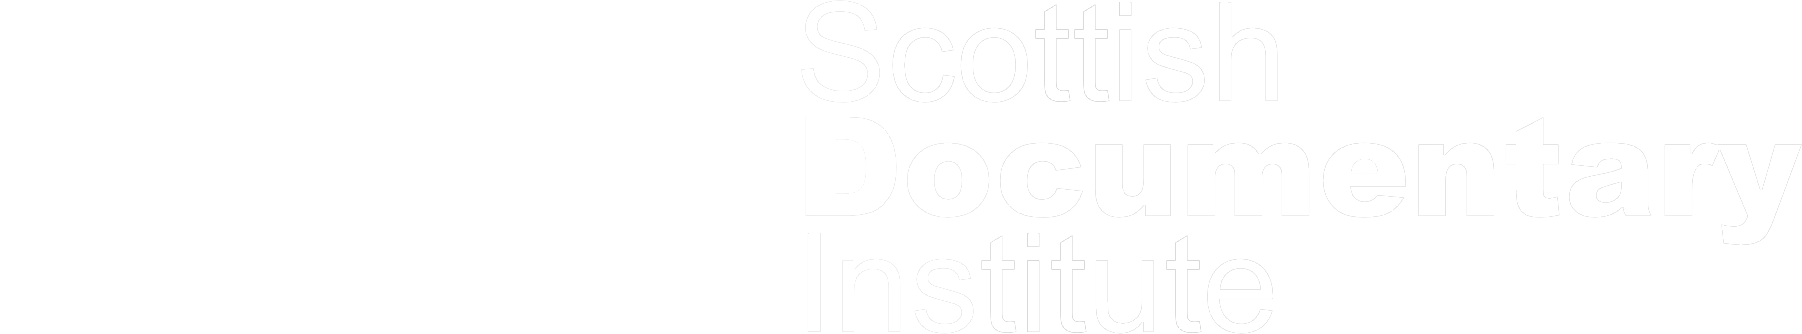 Supporters WYMTB Creative Scotland and Scottish Documentary Institute